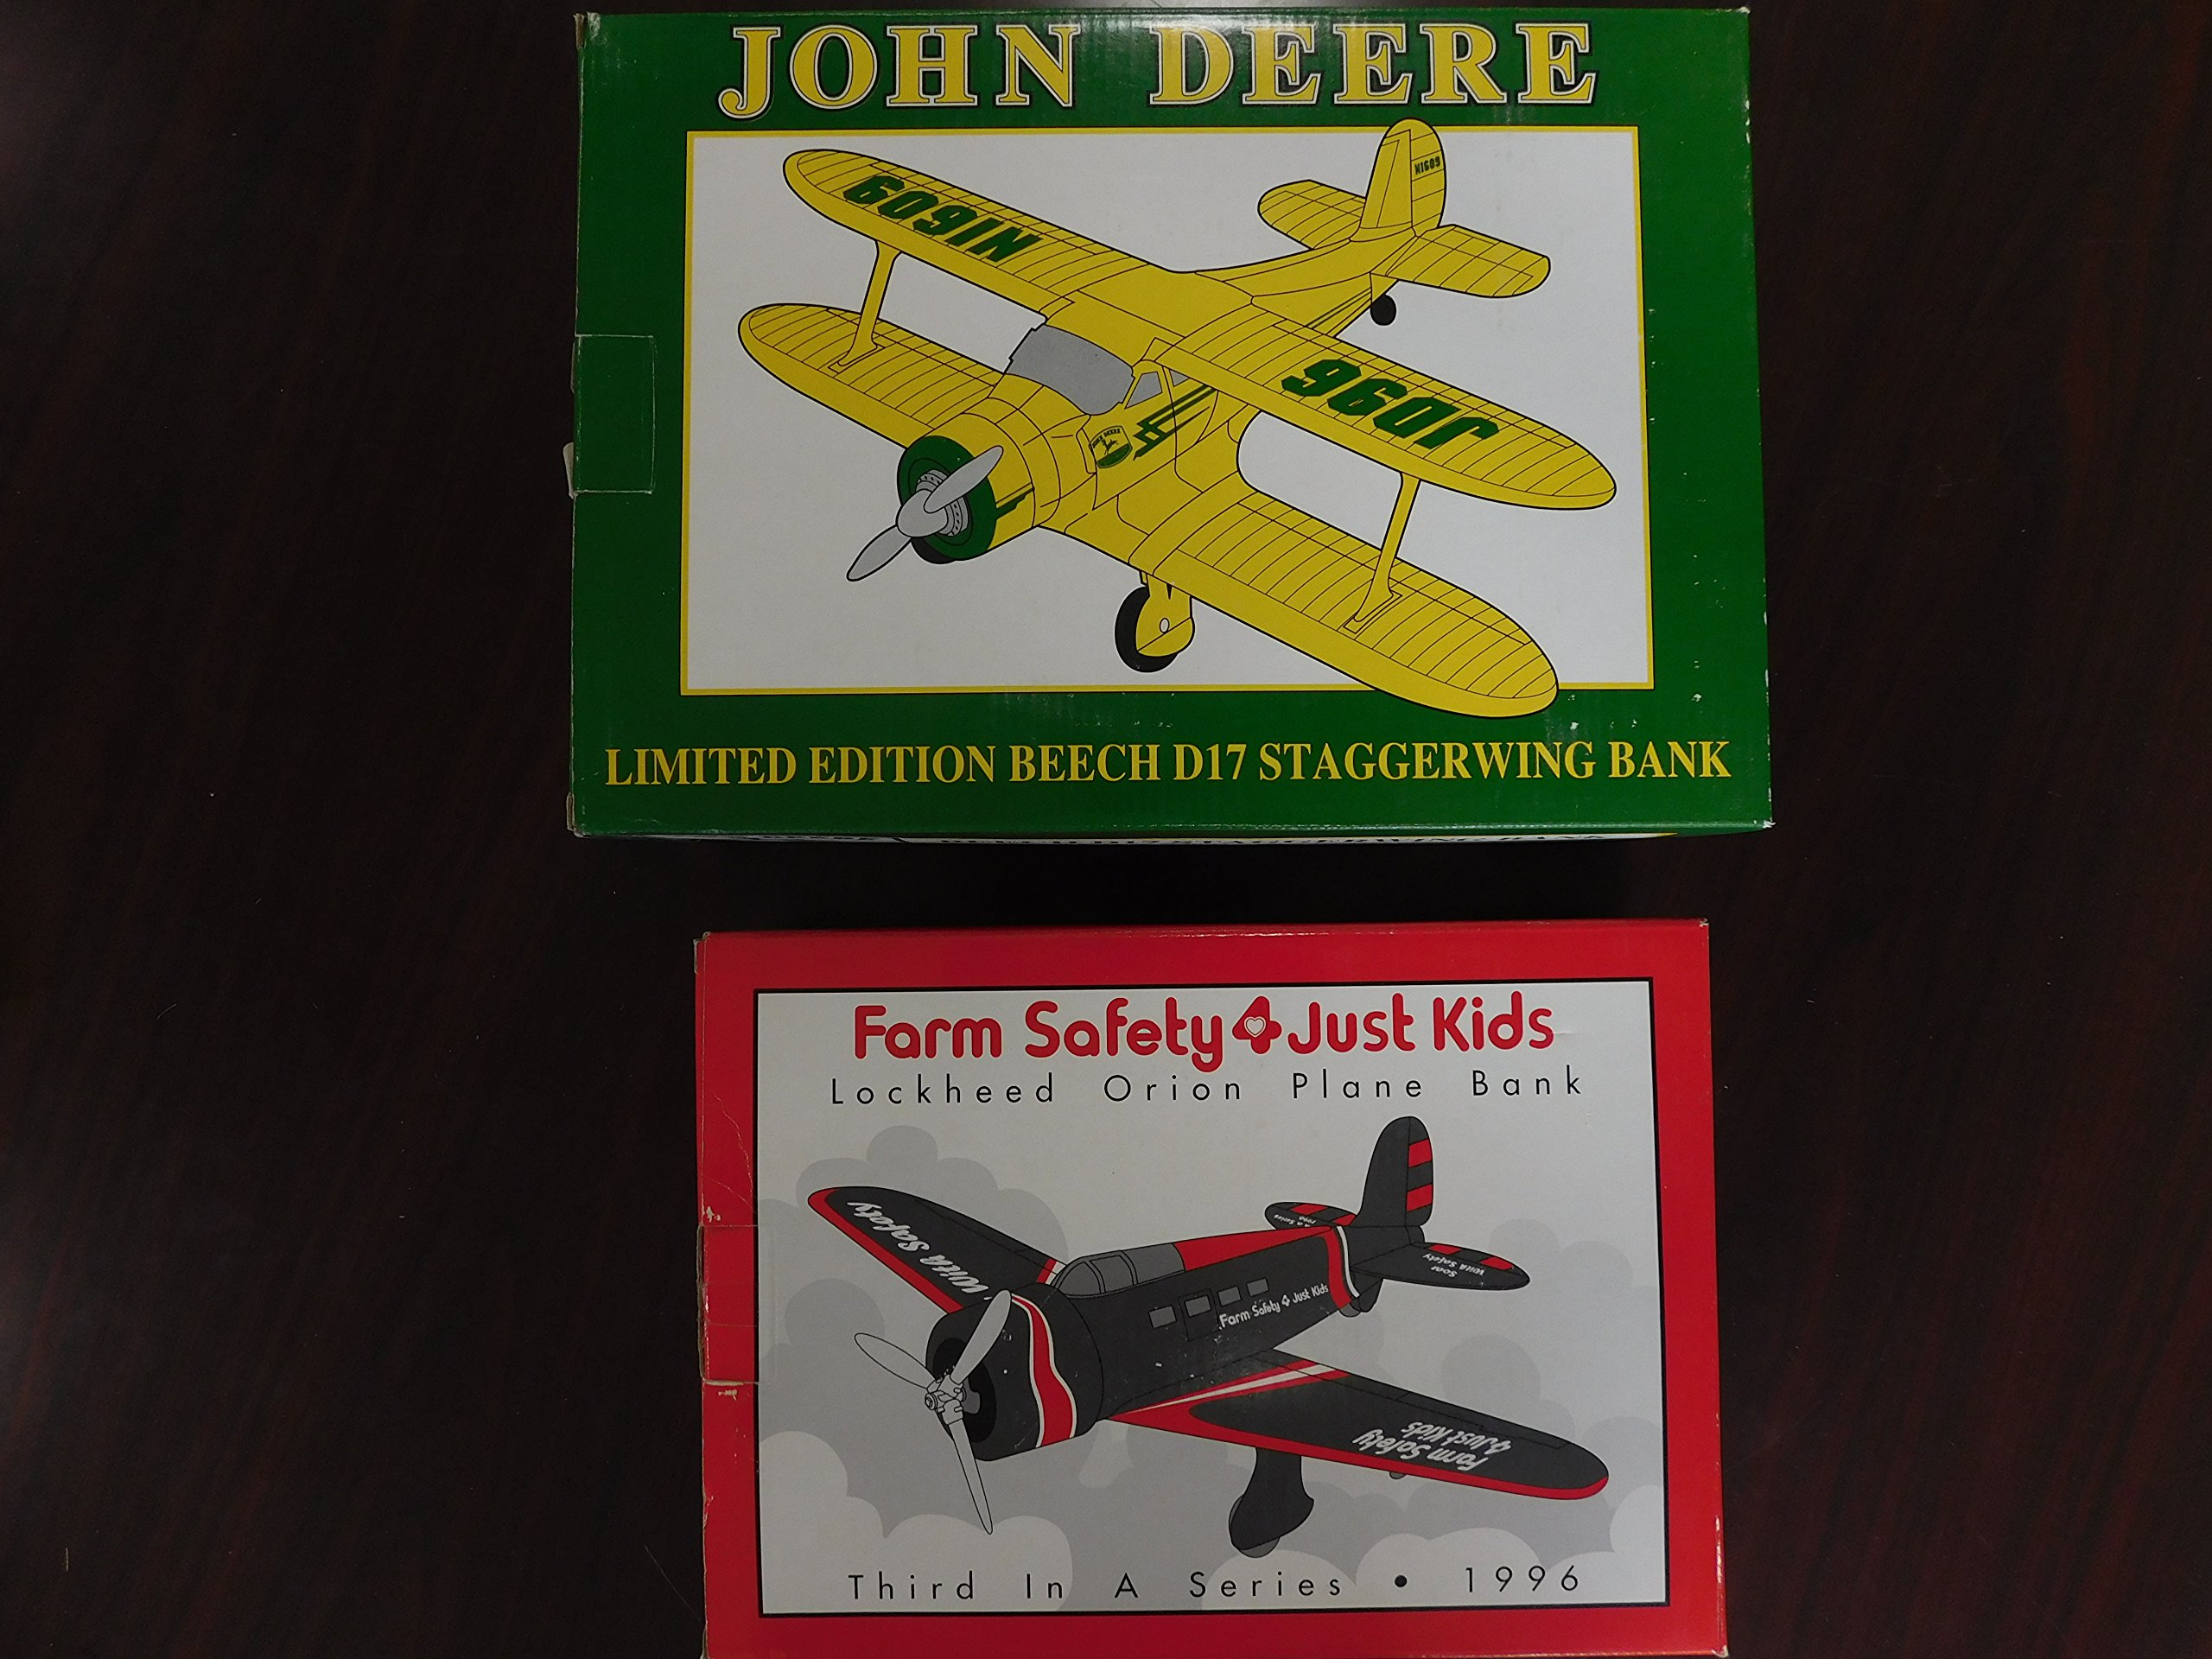 AIRPLANE BANK Set of 2- JOHN DEERE Limited Edition Beech D17 Staggerwing Bank & FARM SAFETY 4 JUST KIDS Lockheed Orion Plane Bank, 1996